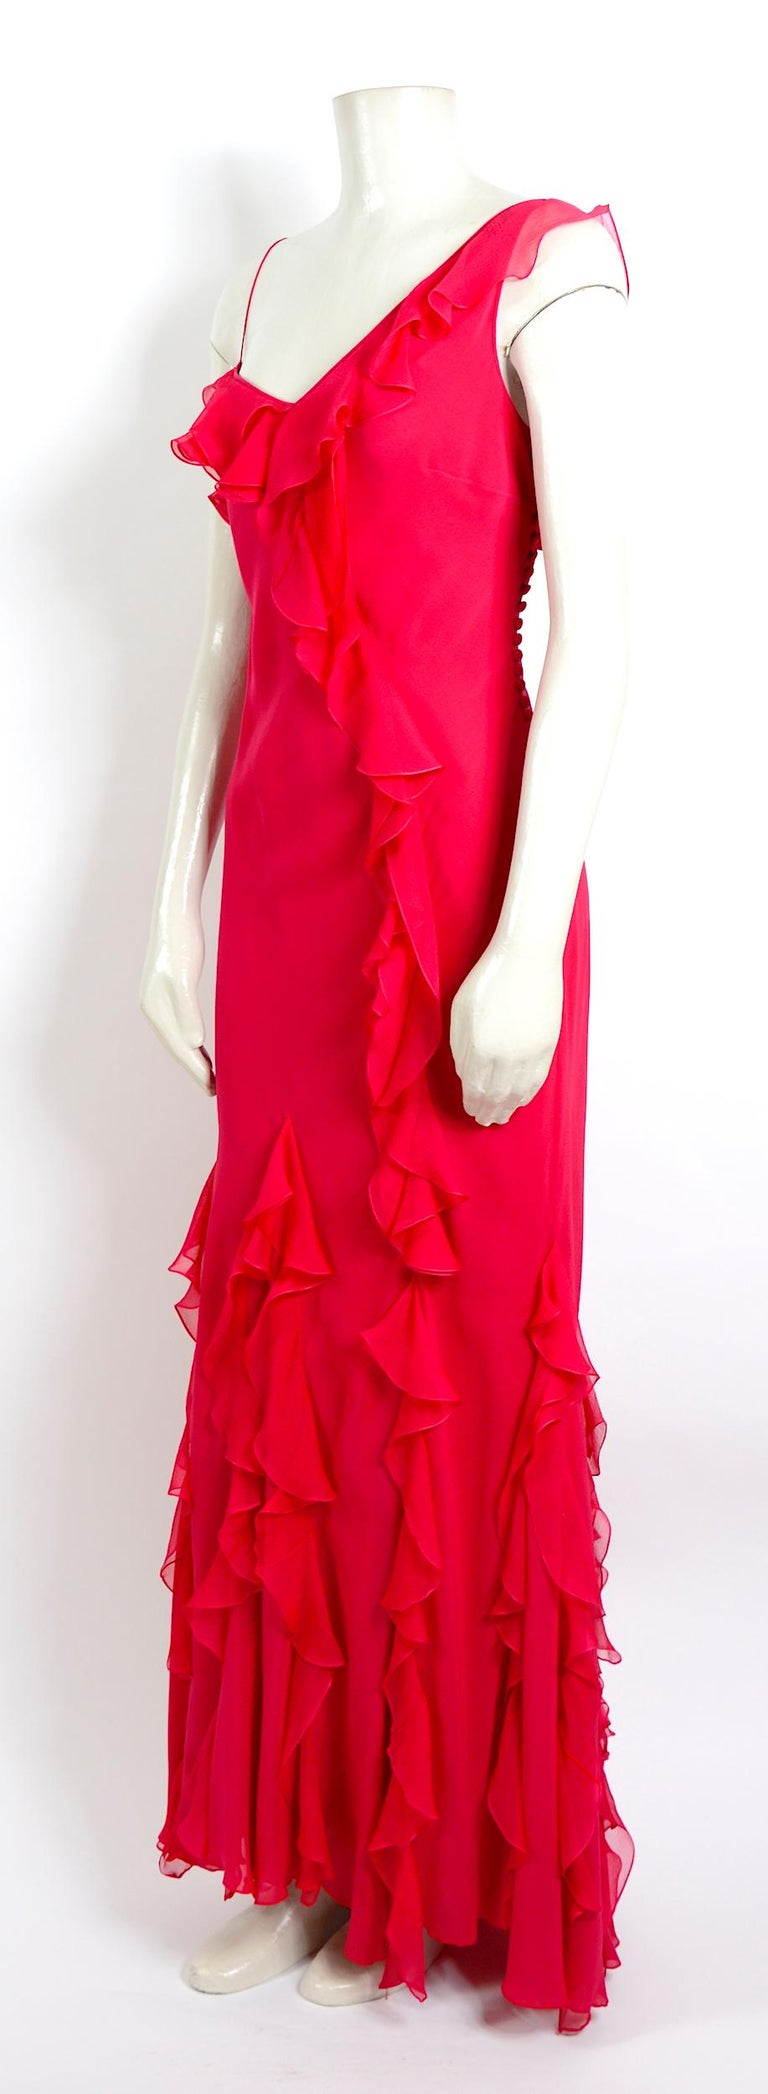 Red John Galliano 1990s vintage red silk bias cut ruffle dress For Sale